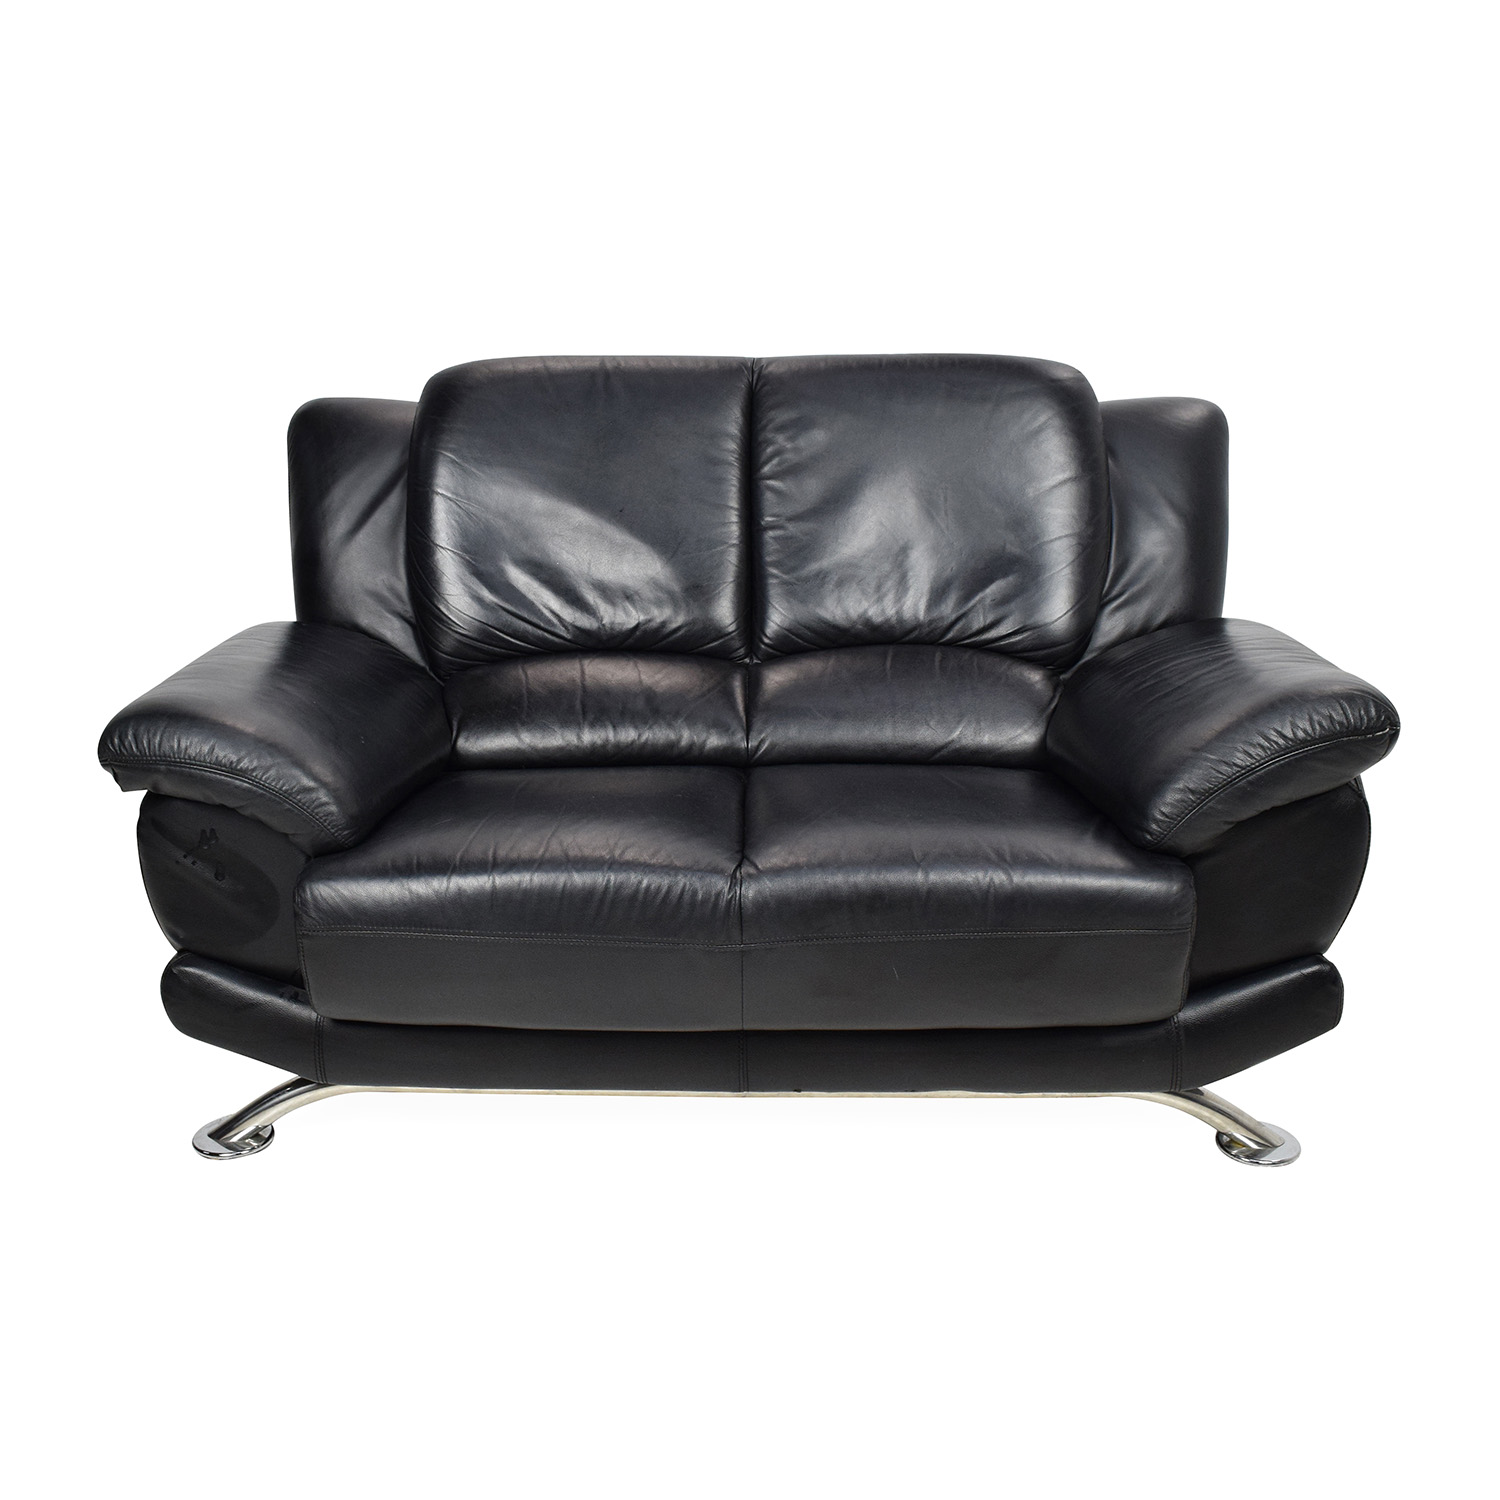 Custom Black Leather Loveseat Sofas